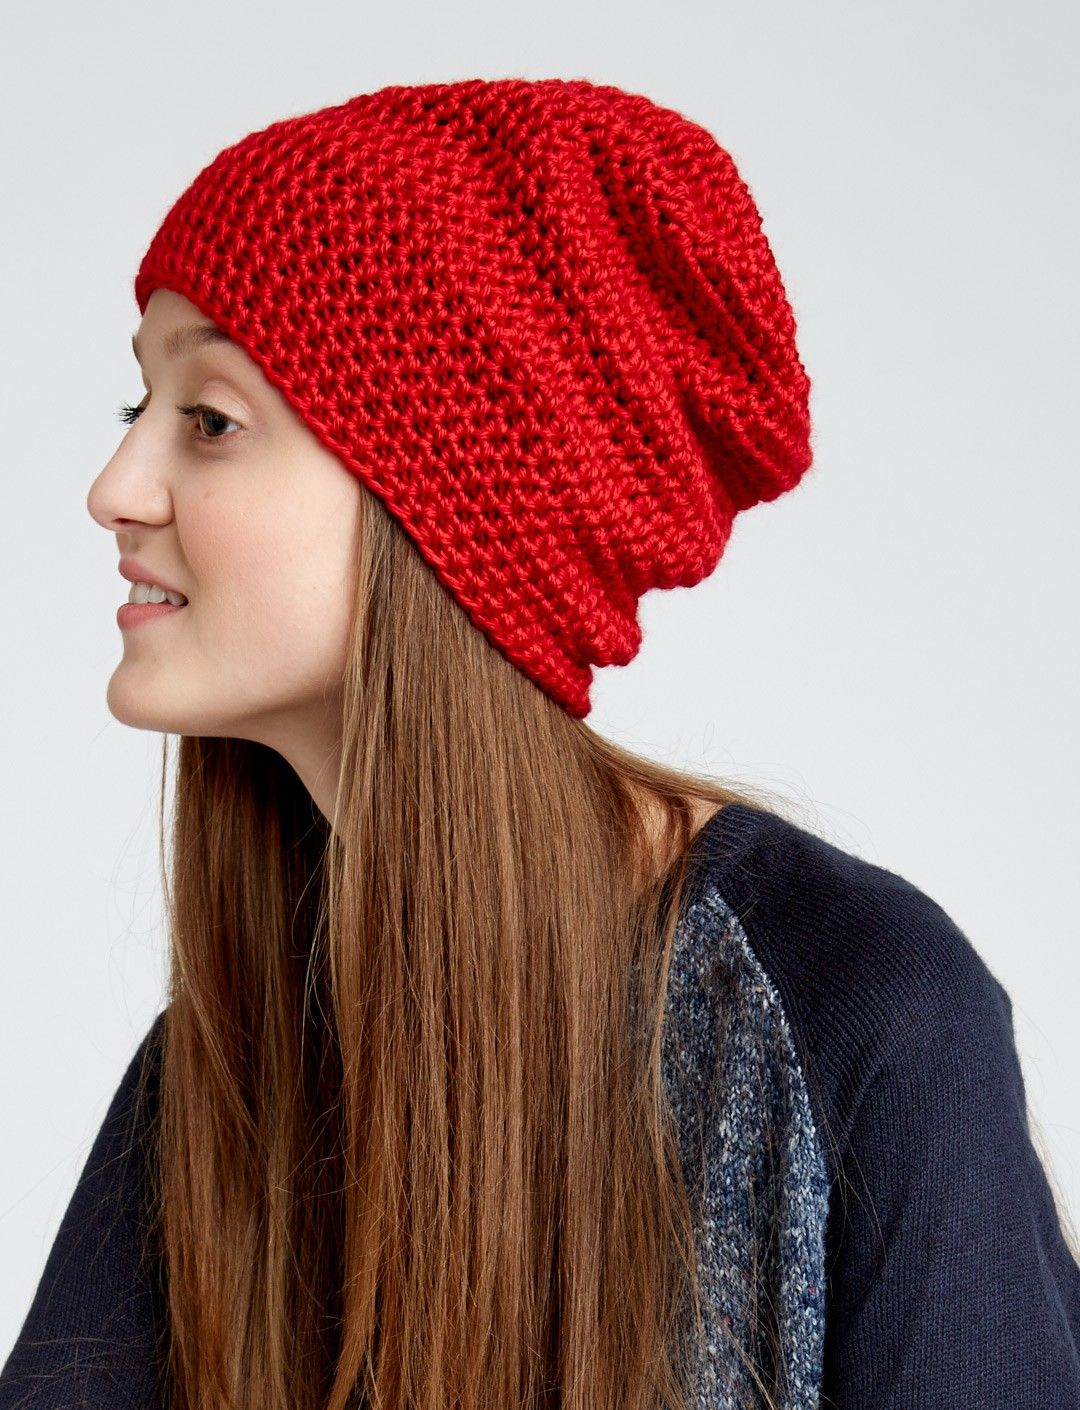 Knitting Hat Patterns For Beginners : Free slouchy beanie pattern intended for beginners and it